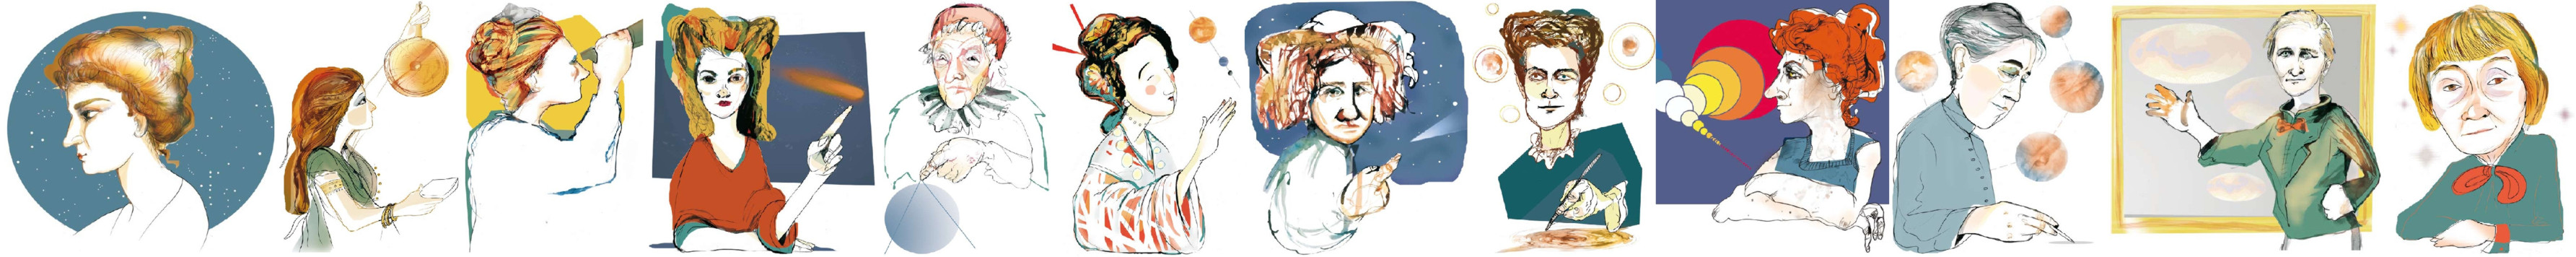 Women-in-Astronomy